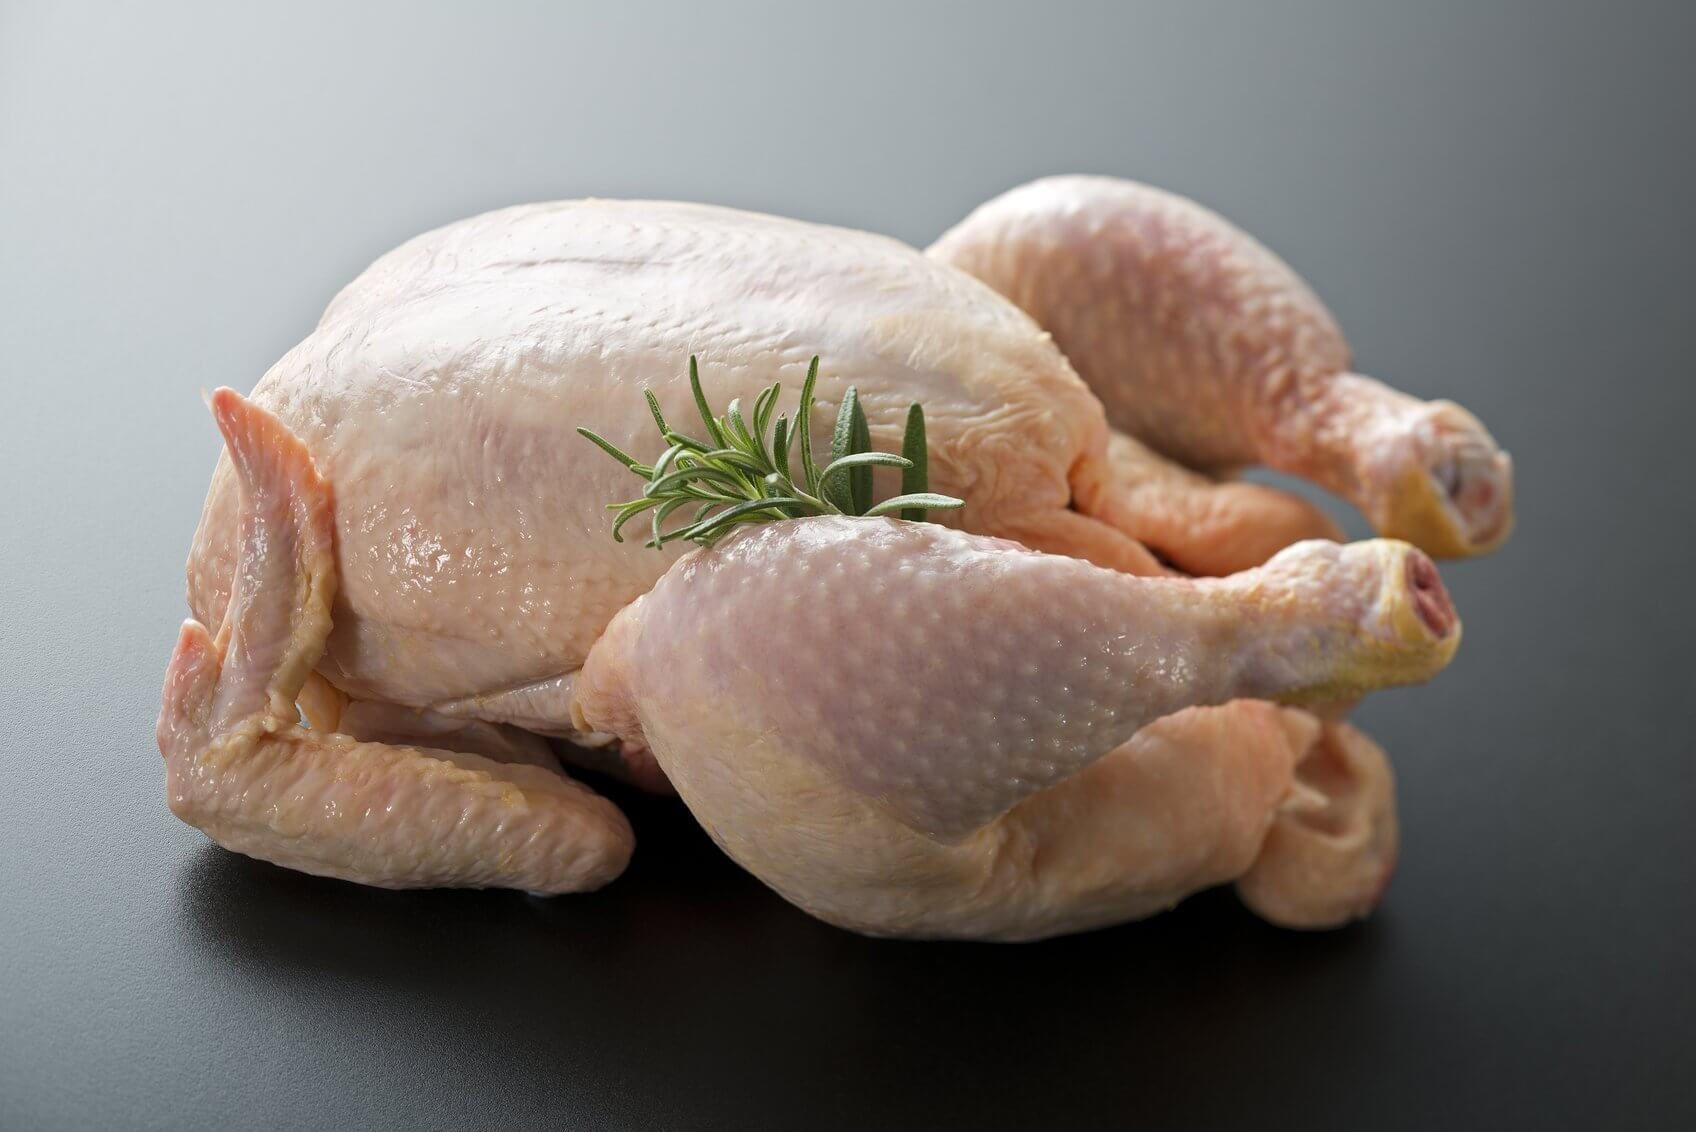 Whole Amish chicken